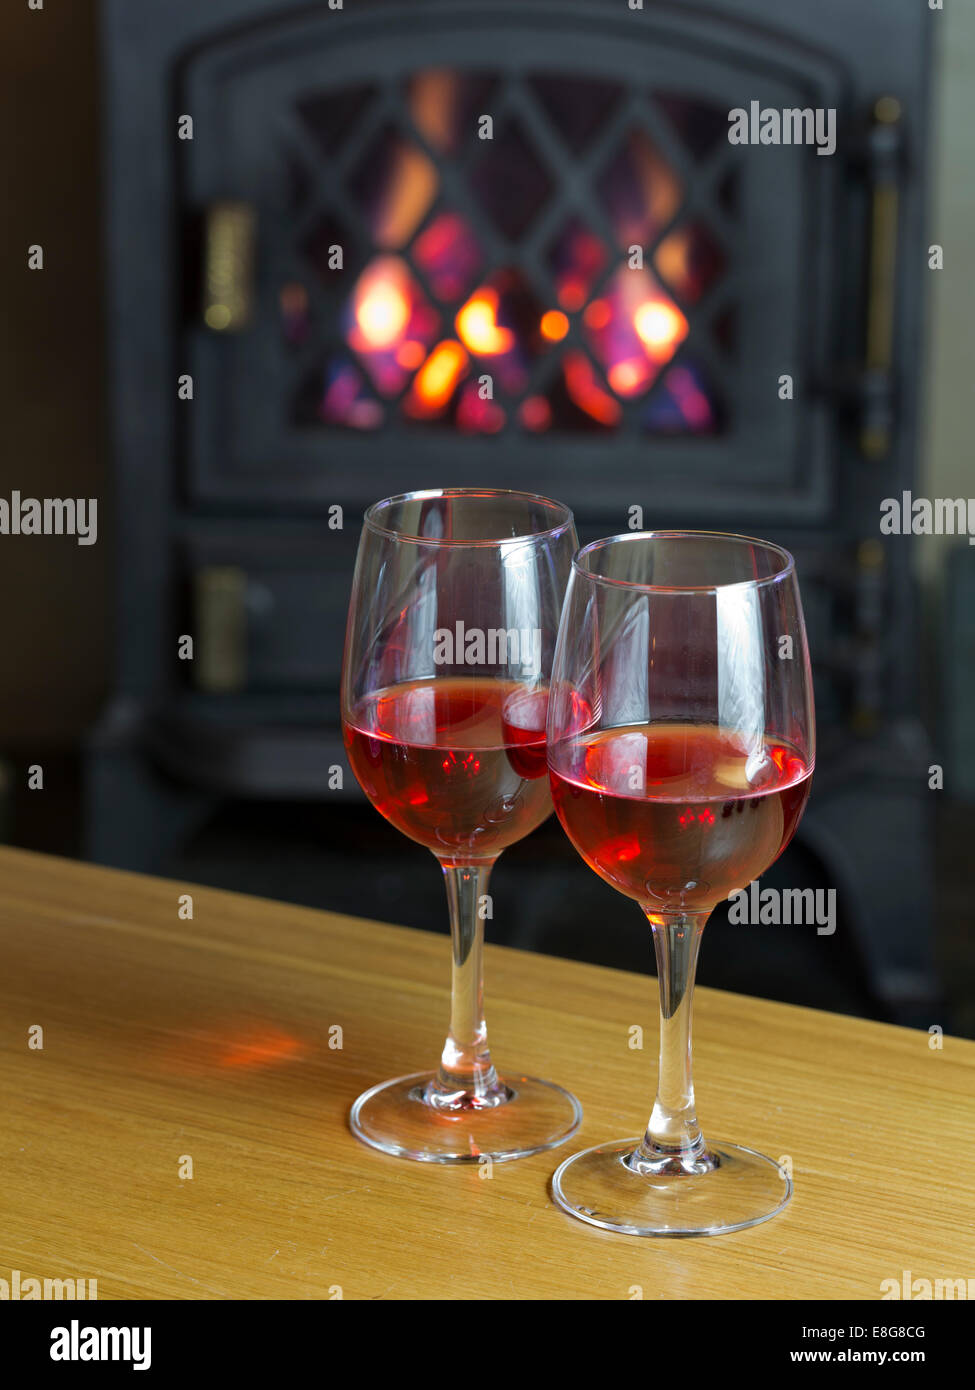 Two glasses of Sloe Gin on a wooden coffee table in front of a cast iron gas stove - Stock Image